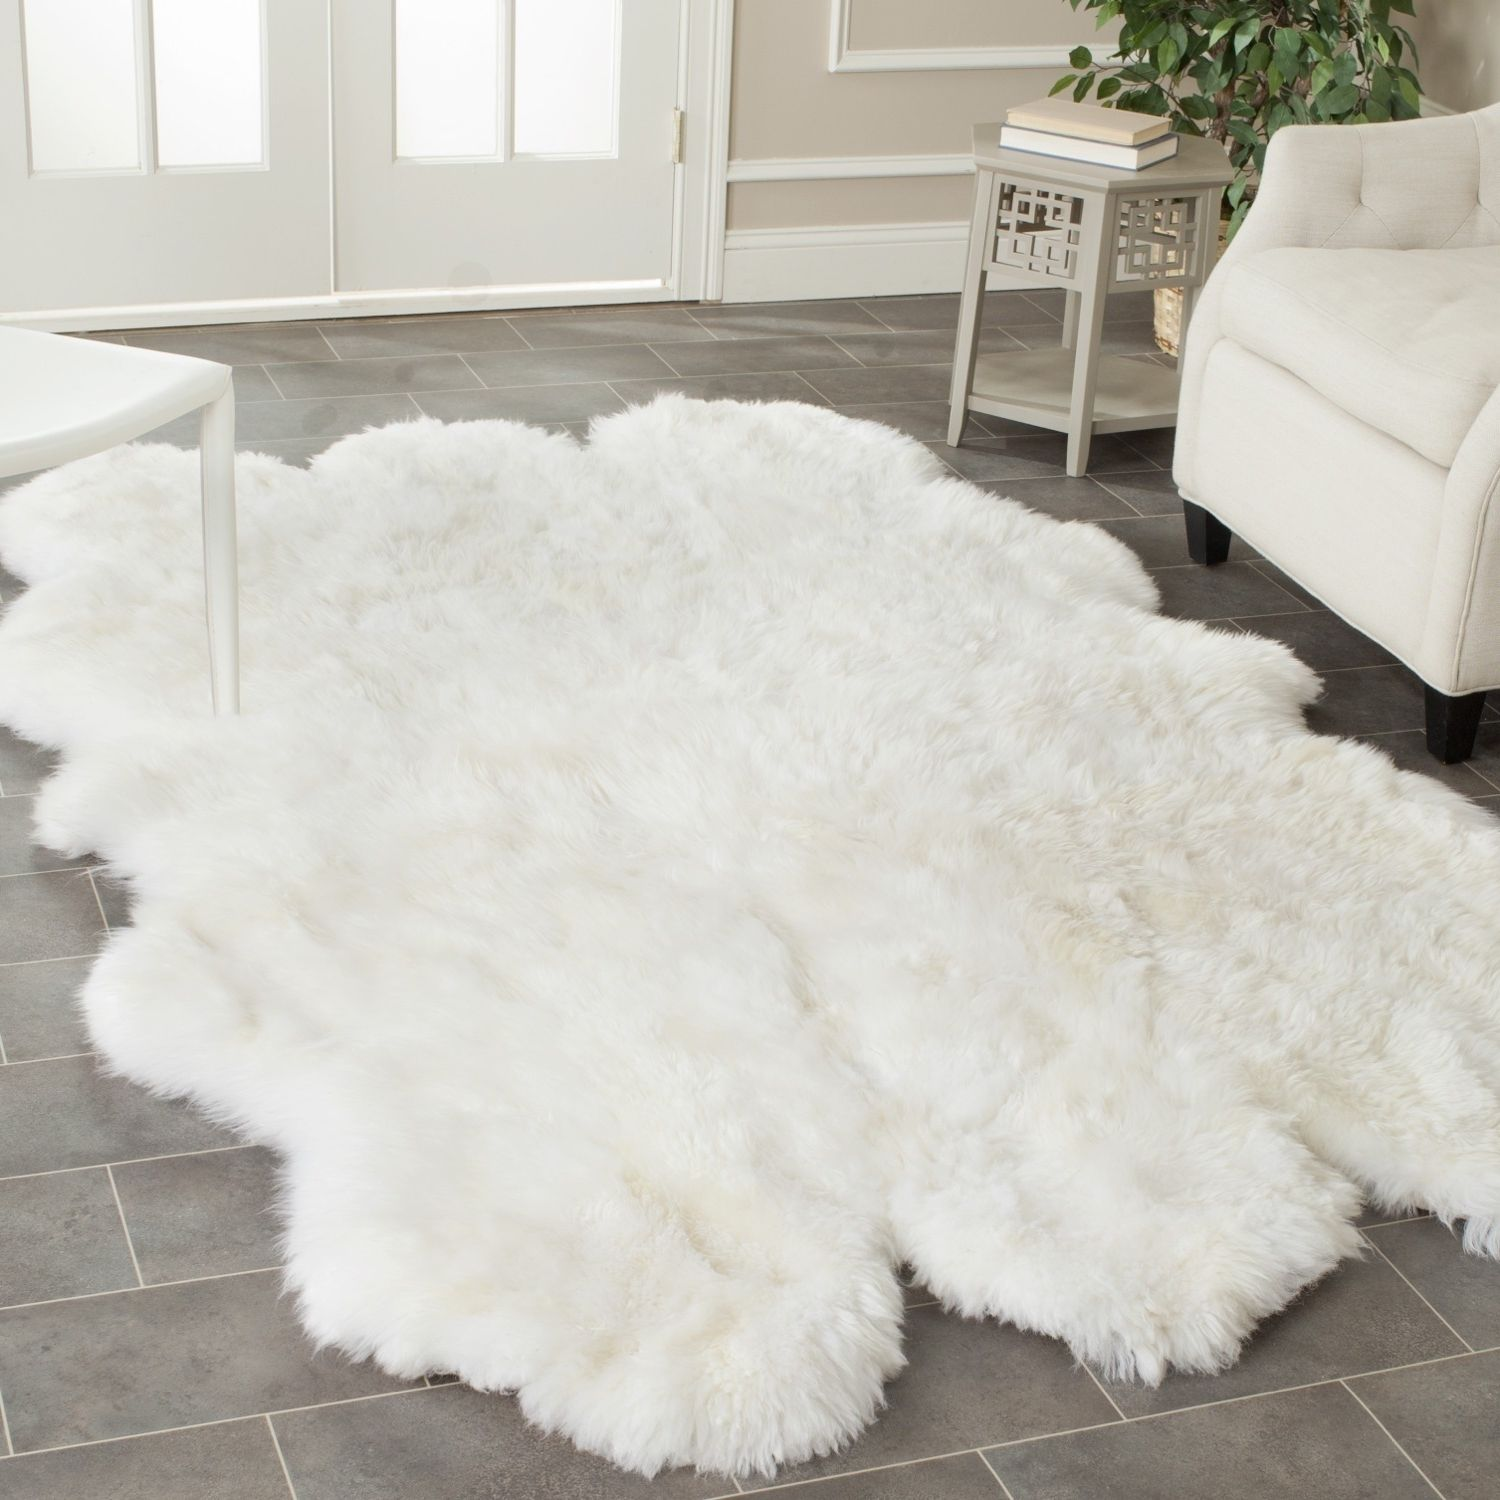 Faux Sheepskin Rug Costco Archives Rugs Model And Style White Fur Rug Ikea Sheepskin Rug Faux Sheepskin Rug